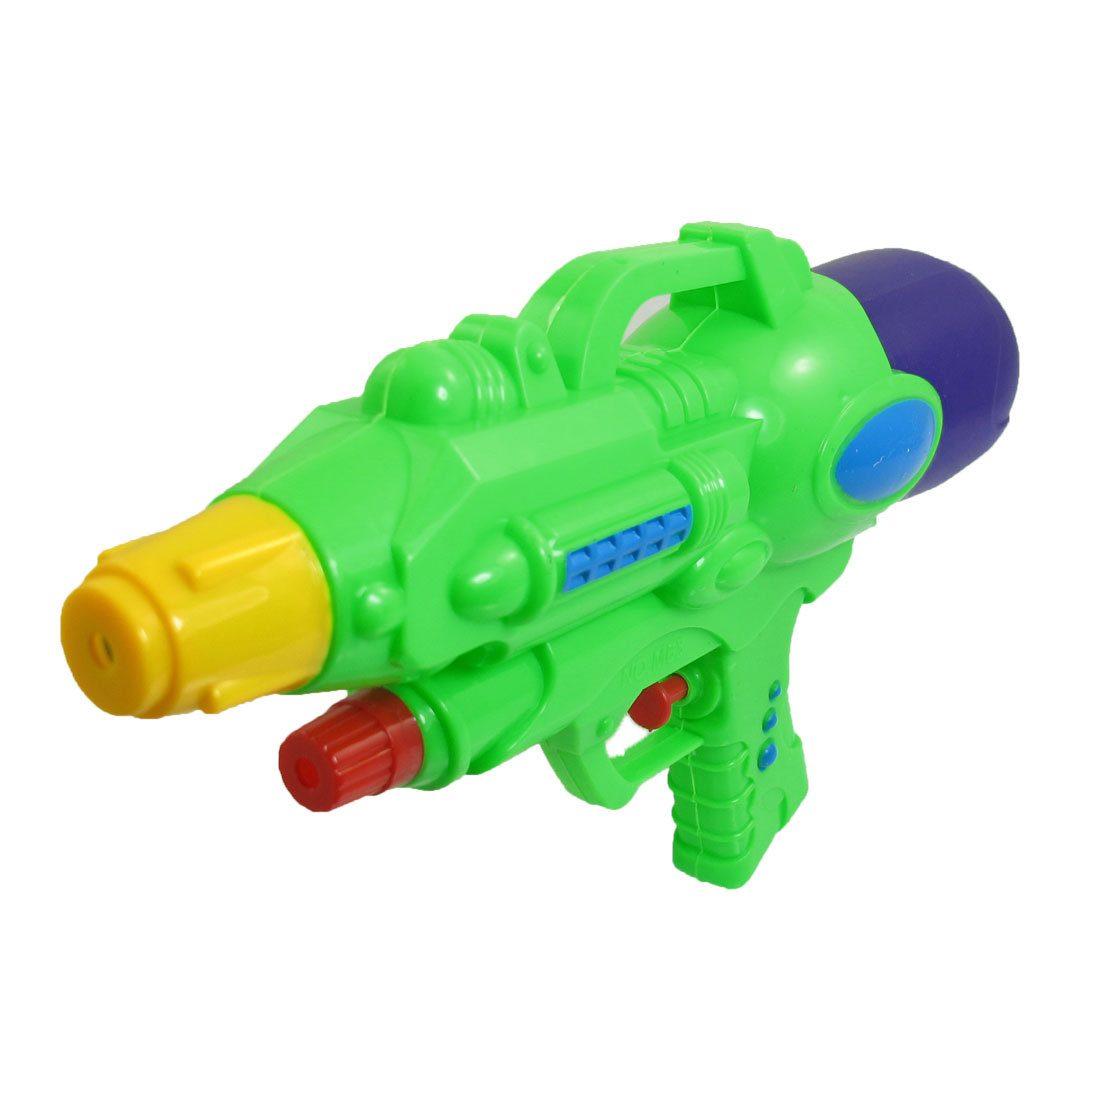 "10.2"" Length Purple Green Plastic Water Spray Gun Squirt Toy for Children"